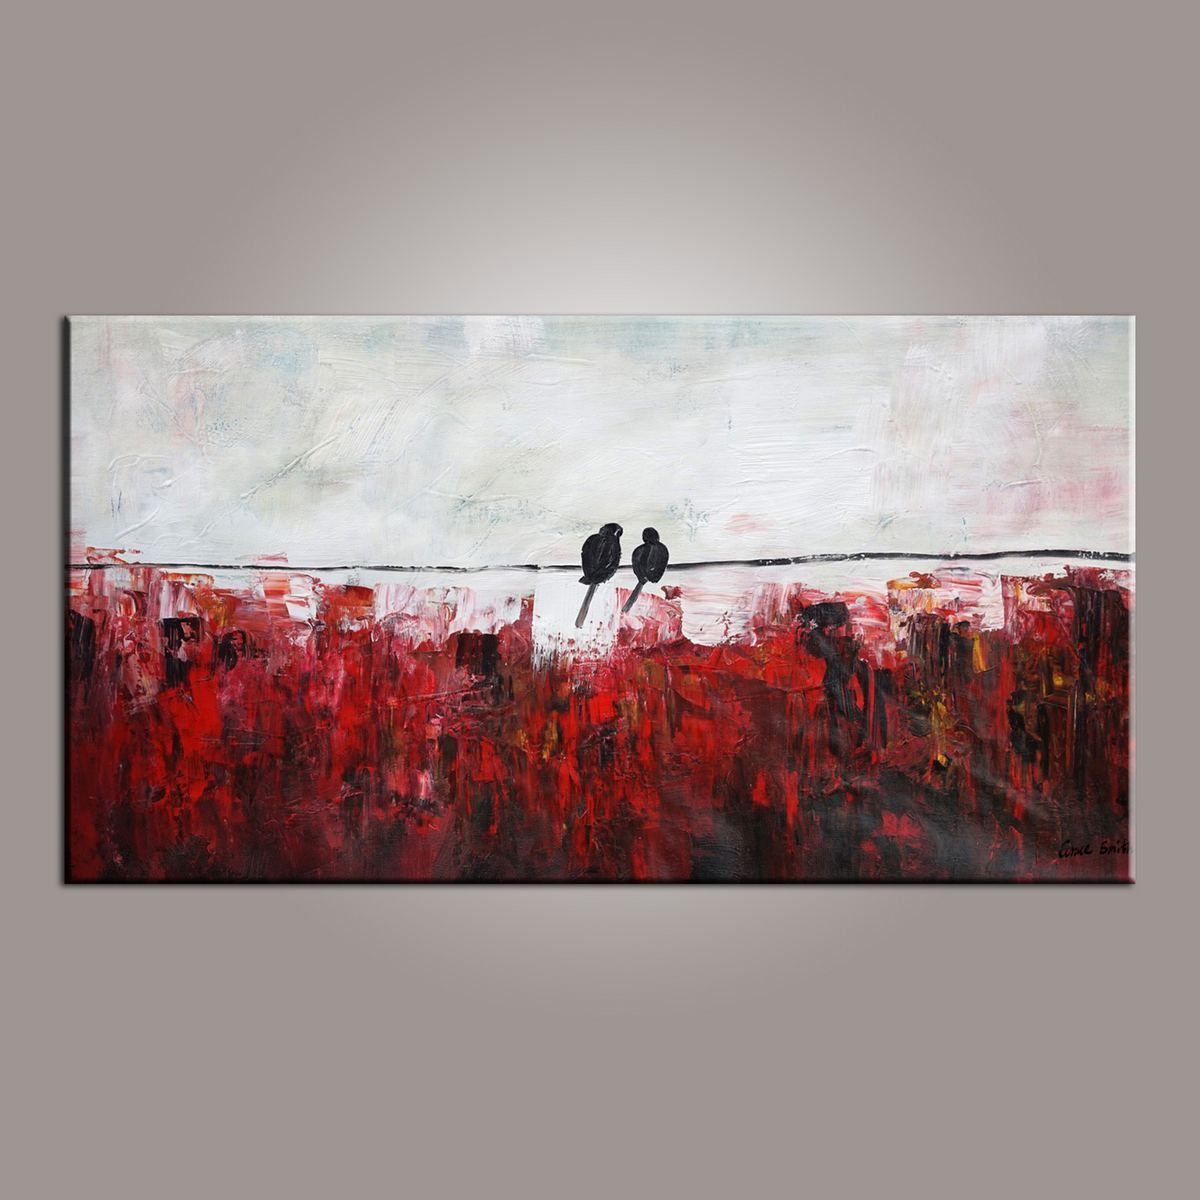 abstract art, love birds painting, painting for sale, modern art